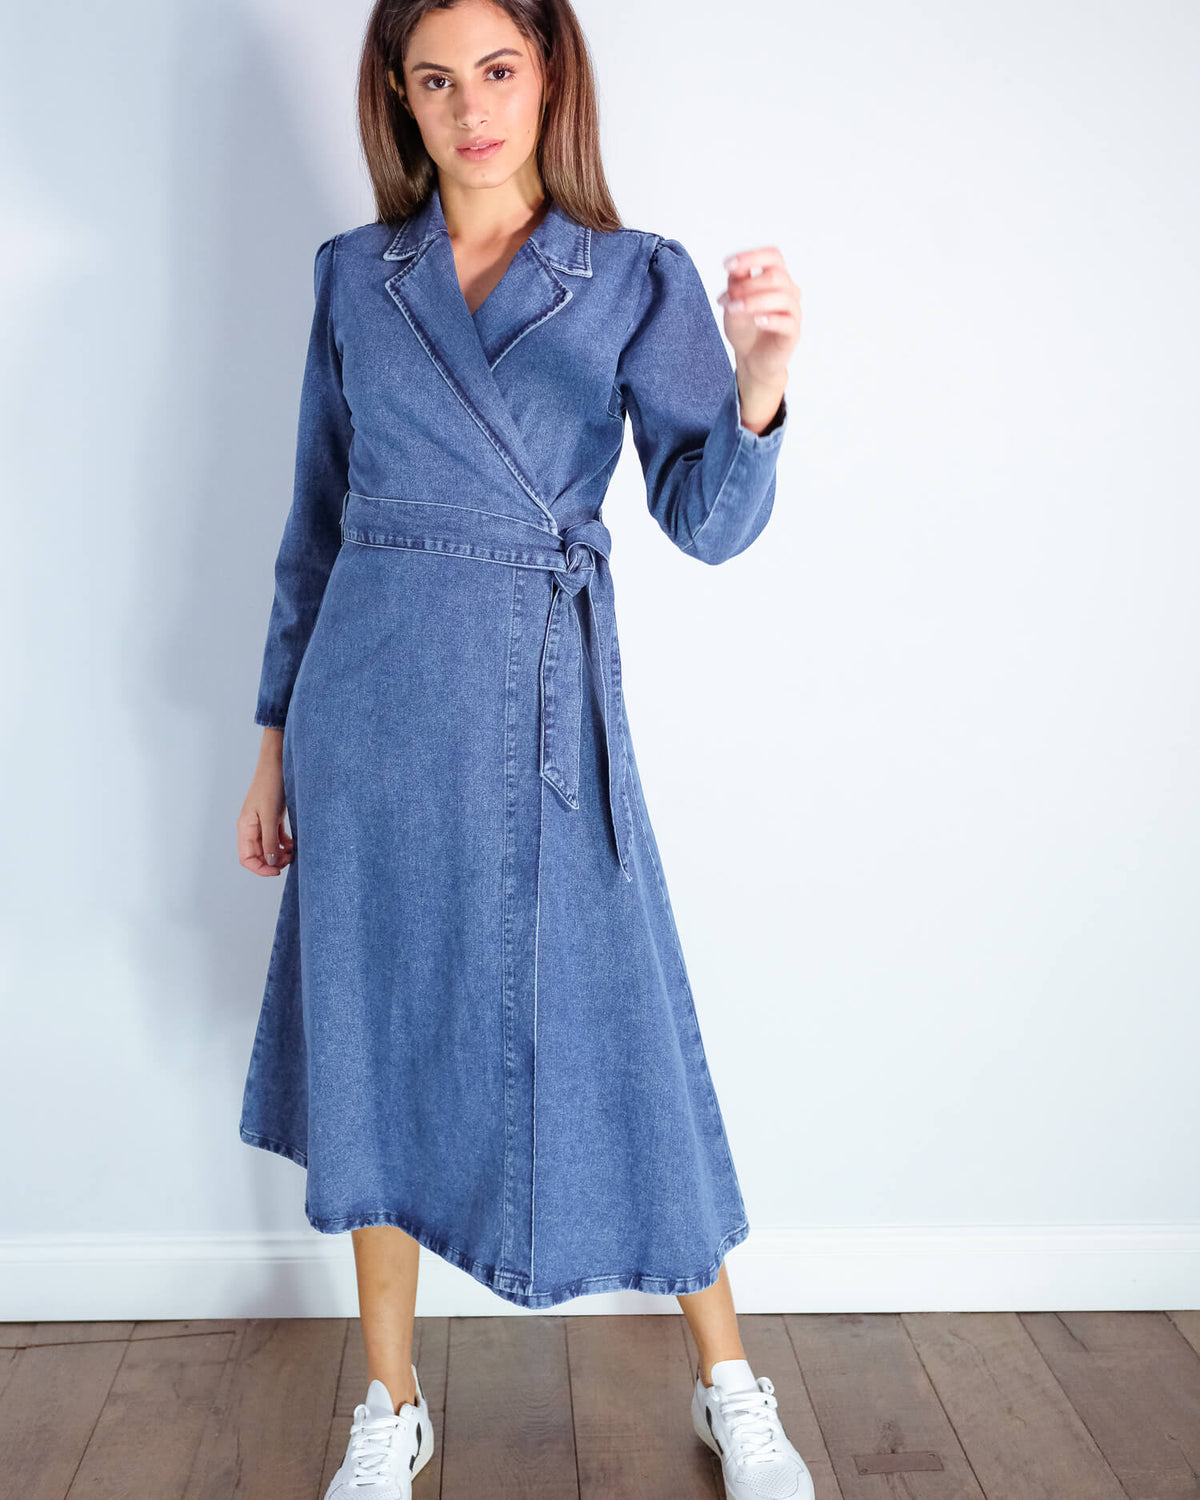 SLF Harper denim dress